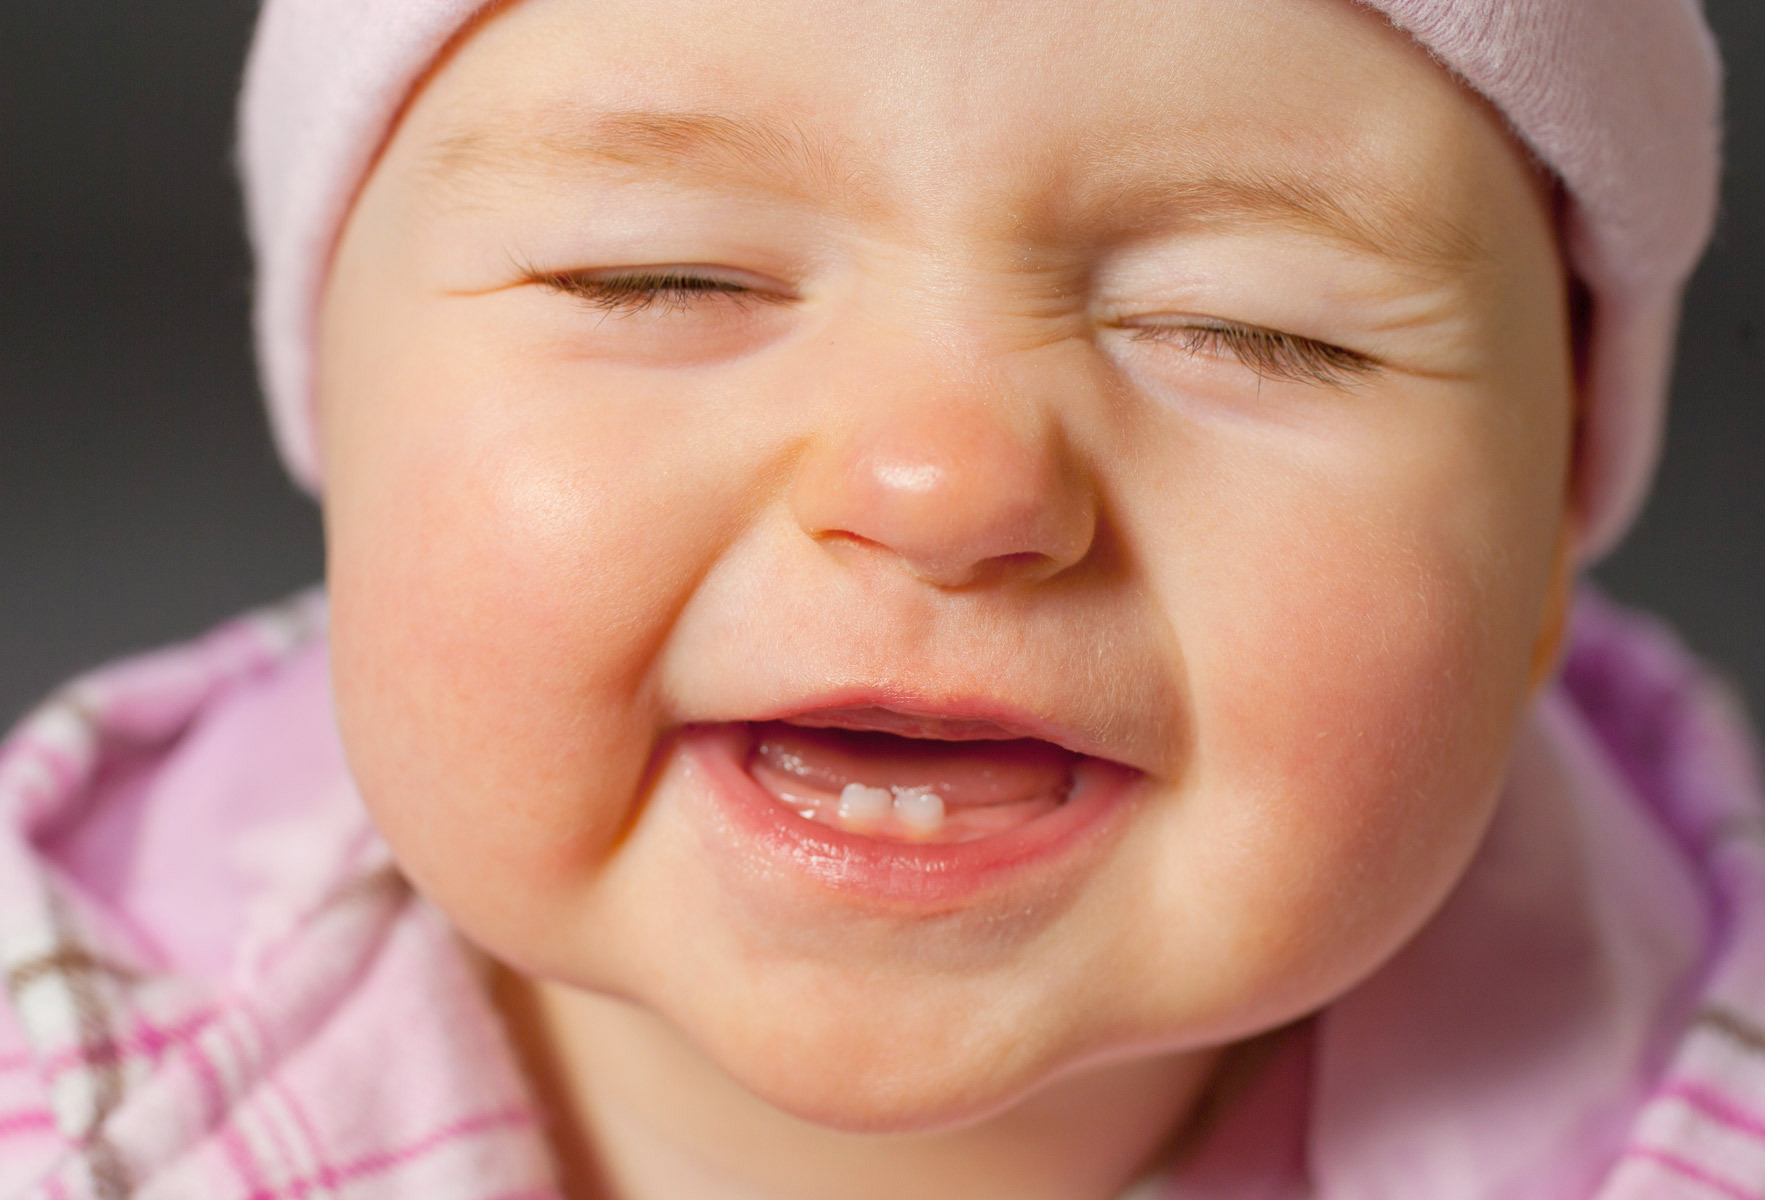 Home Remedies: Tips For Treating Teething Babies